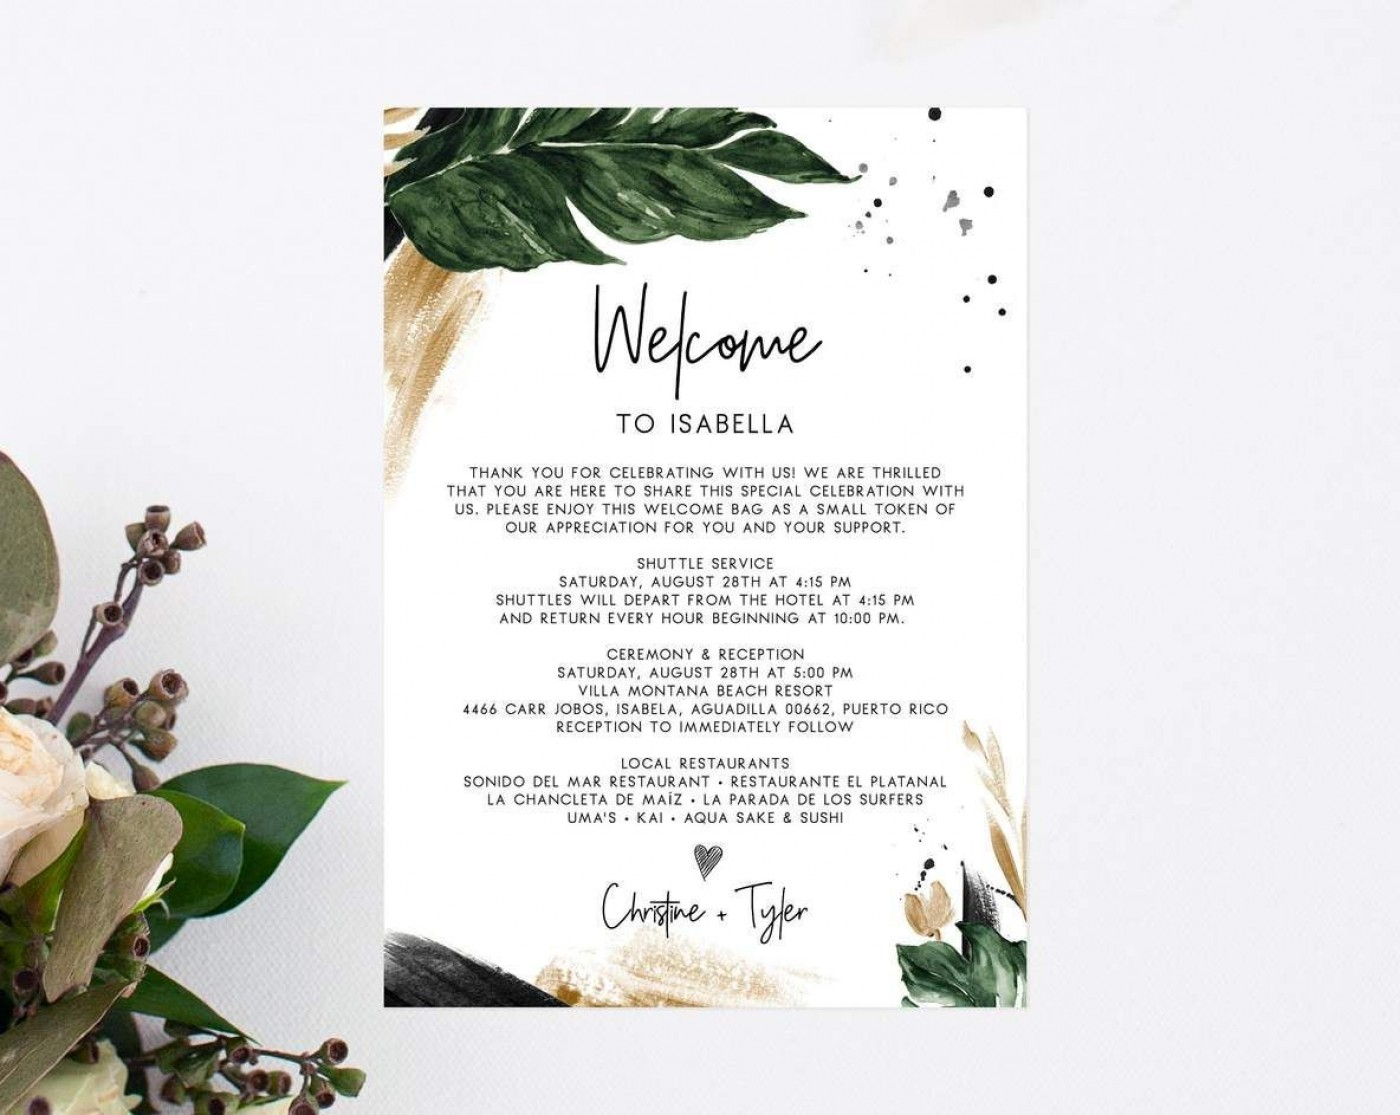 000 Dreaded Wedding Hotel Welcome Letter Template Sample 1400